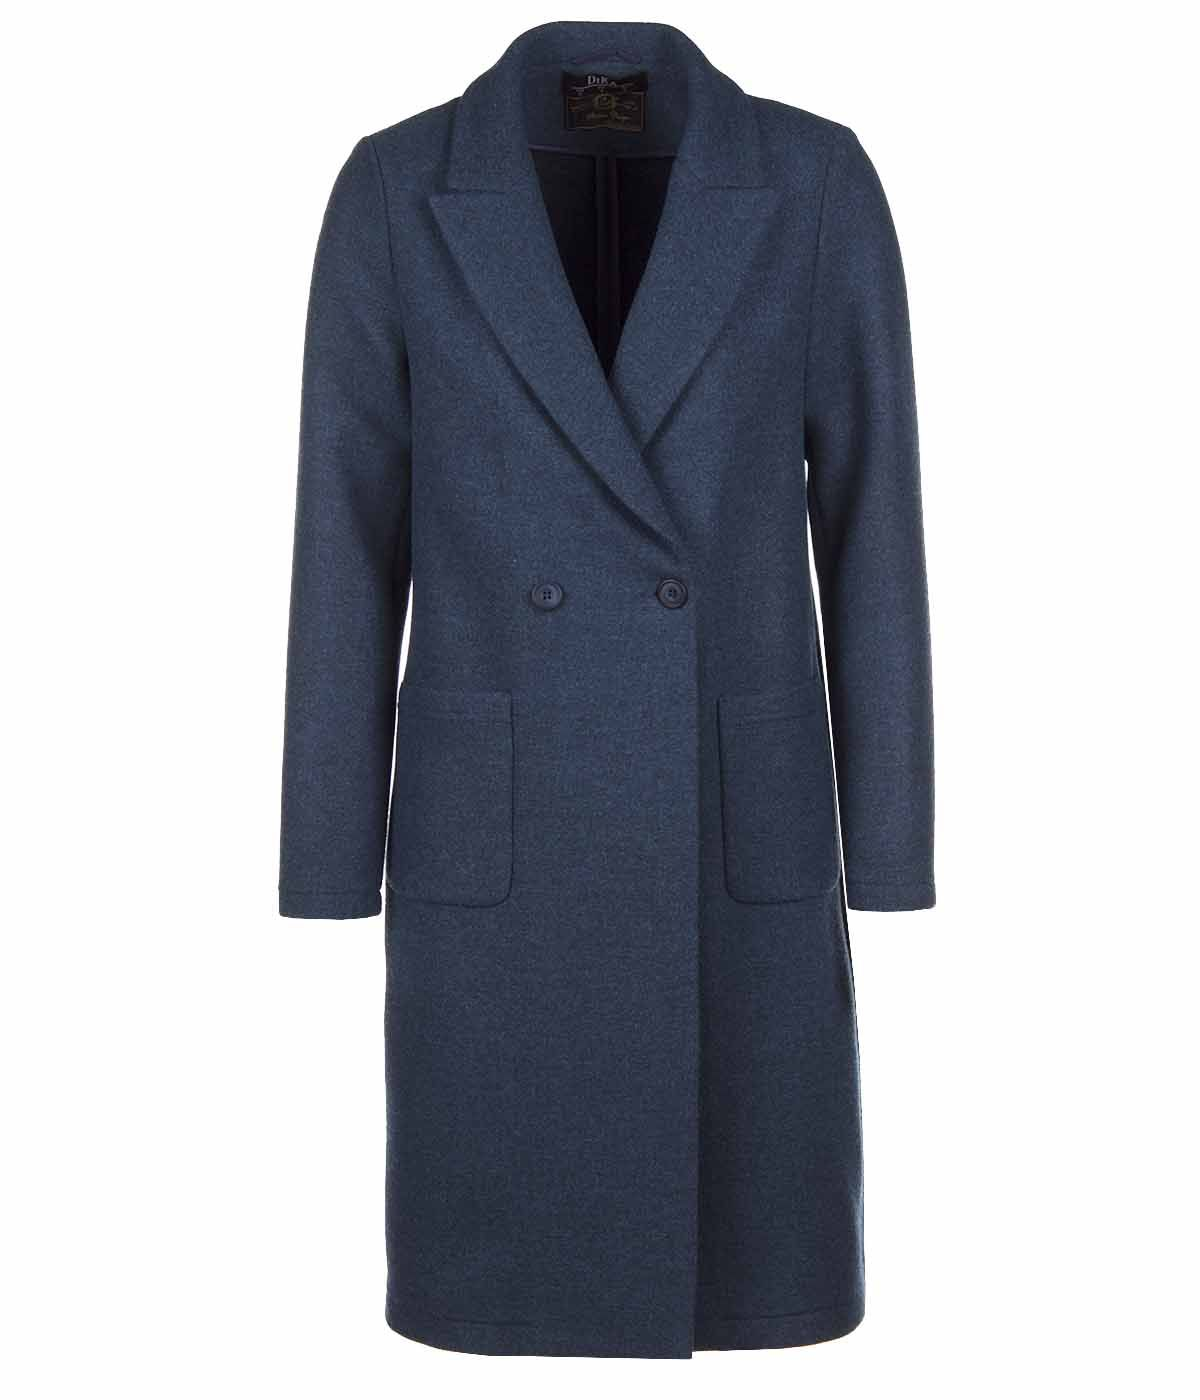 DARK BLUE WOOL COAT WITH ASYMMETRIC CLOSURE 0